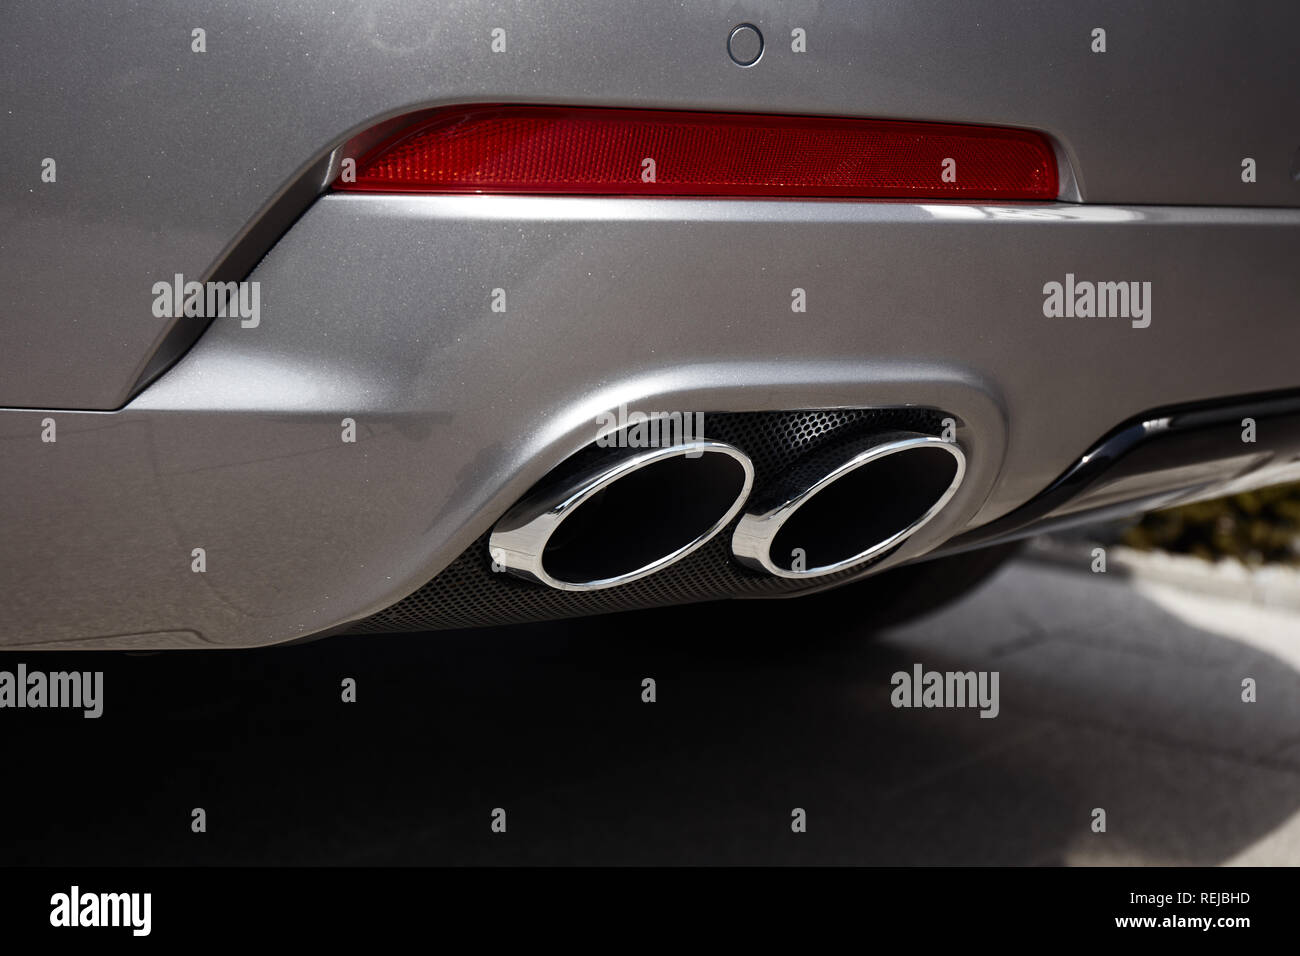 Automotive Parts Stock Photos & Automotive Parts Stock